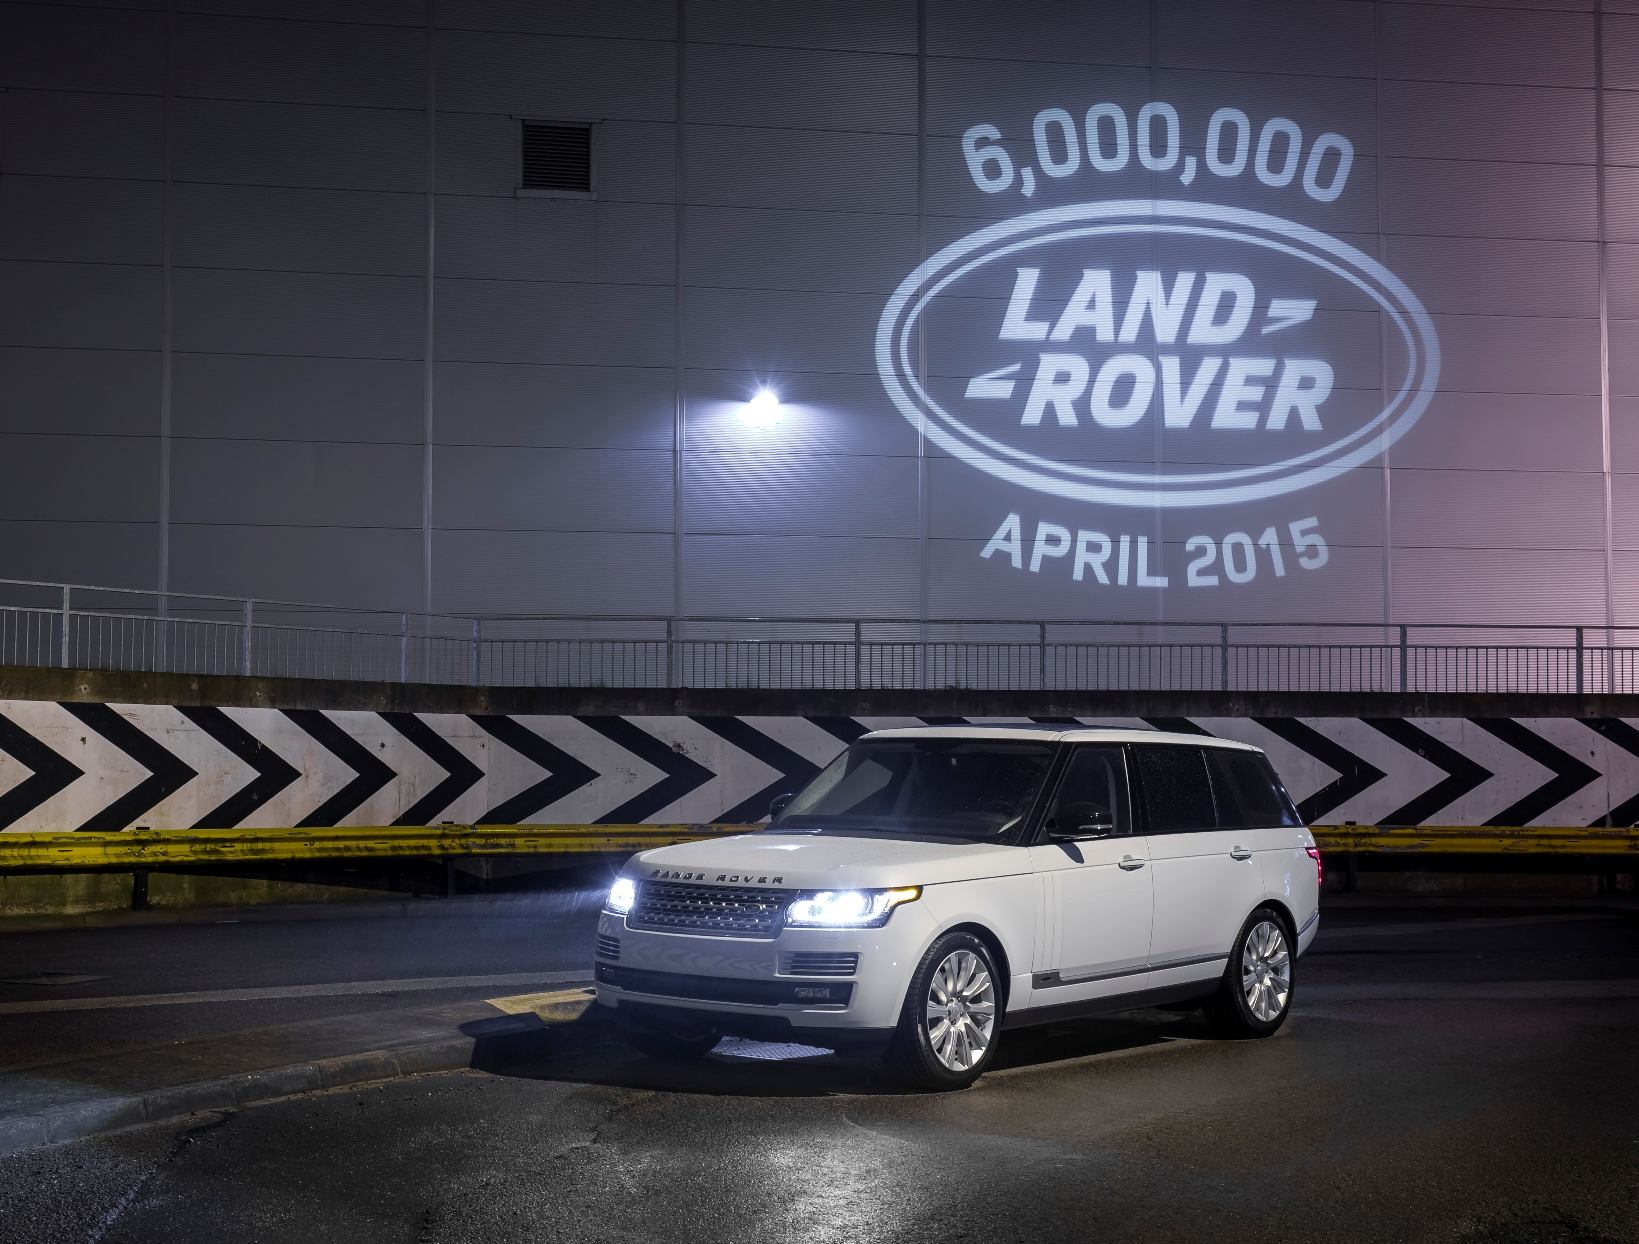 Land Rover a quota 6 milioni